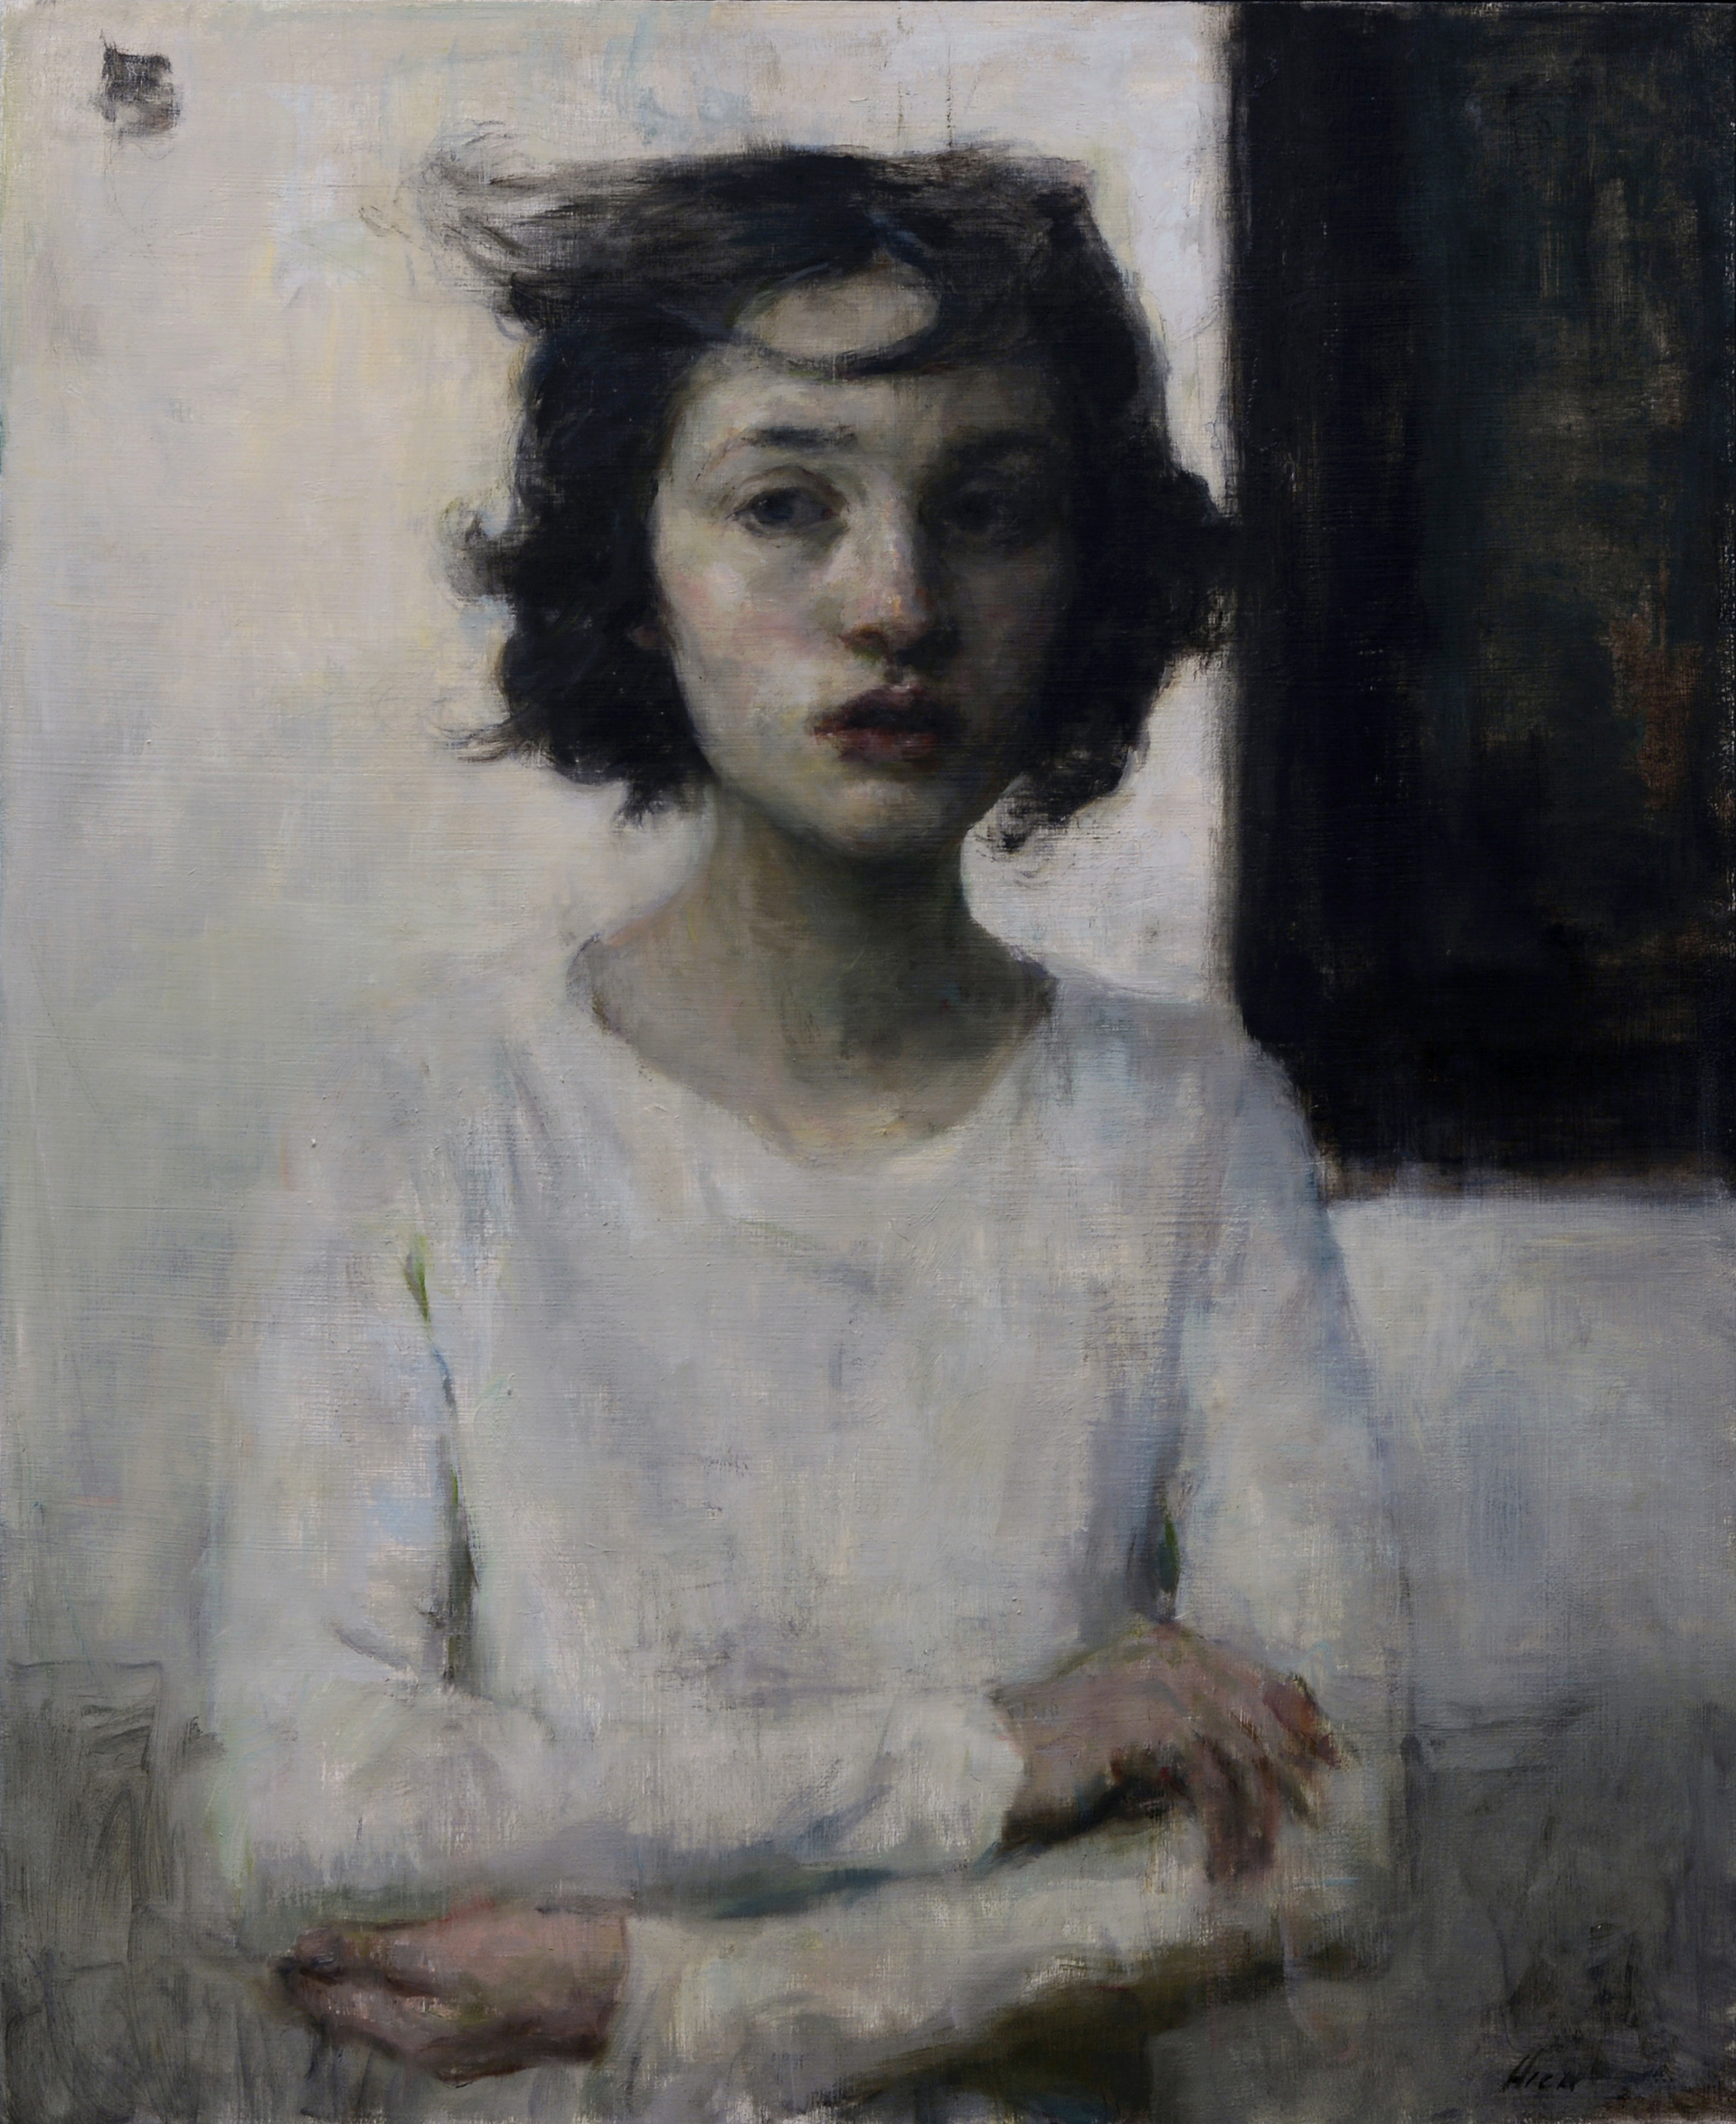 Evanescent by Ron Hicks